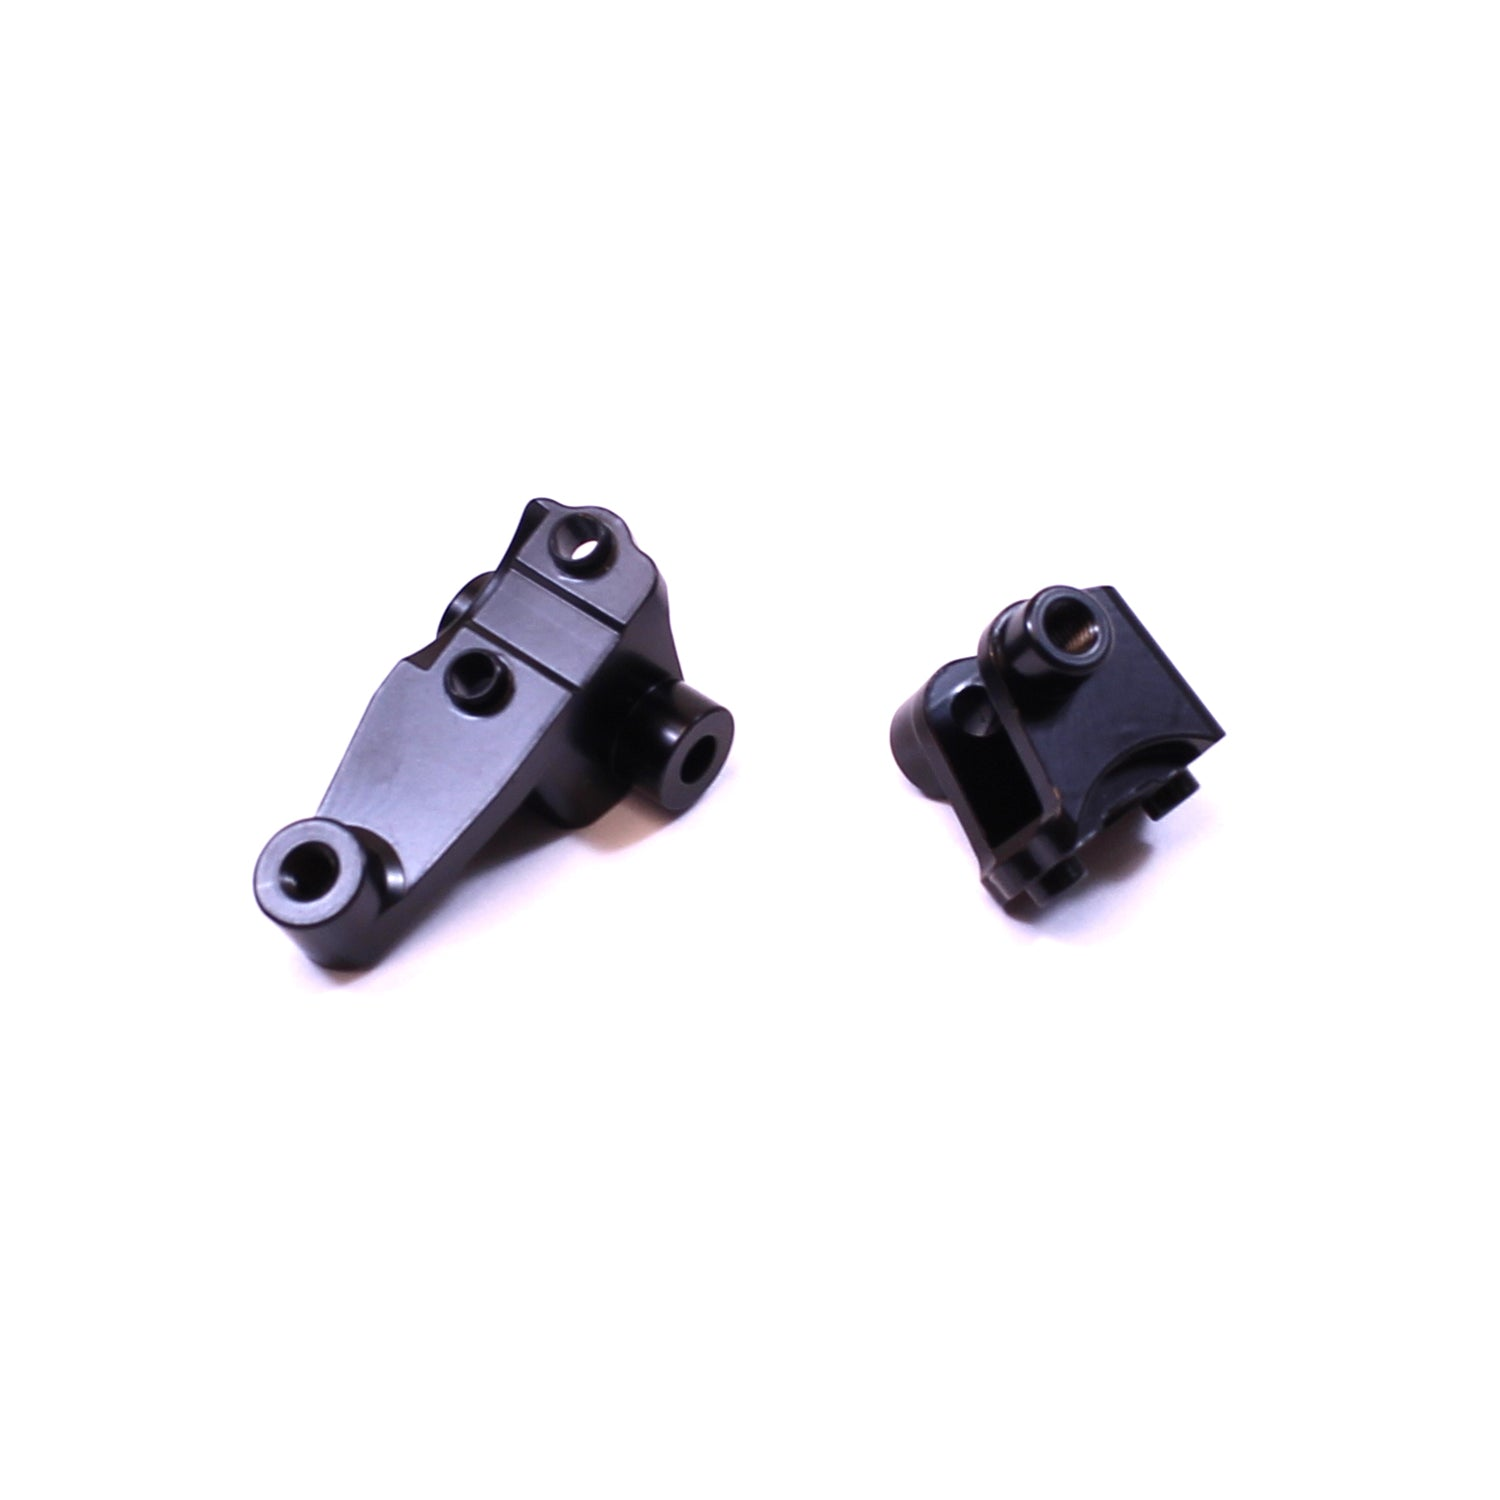 ST Racing Concepts Brass Front Lower Shock and Panhard Mount, Black, CNC Machined, for Traxxas TRX-4, (1pc) SPTST8227FBR